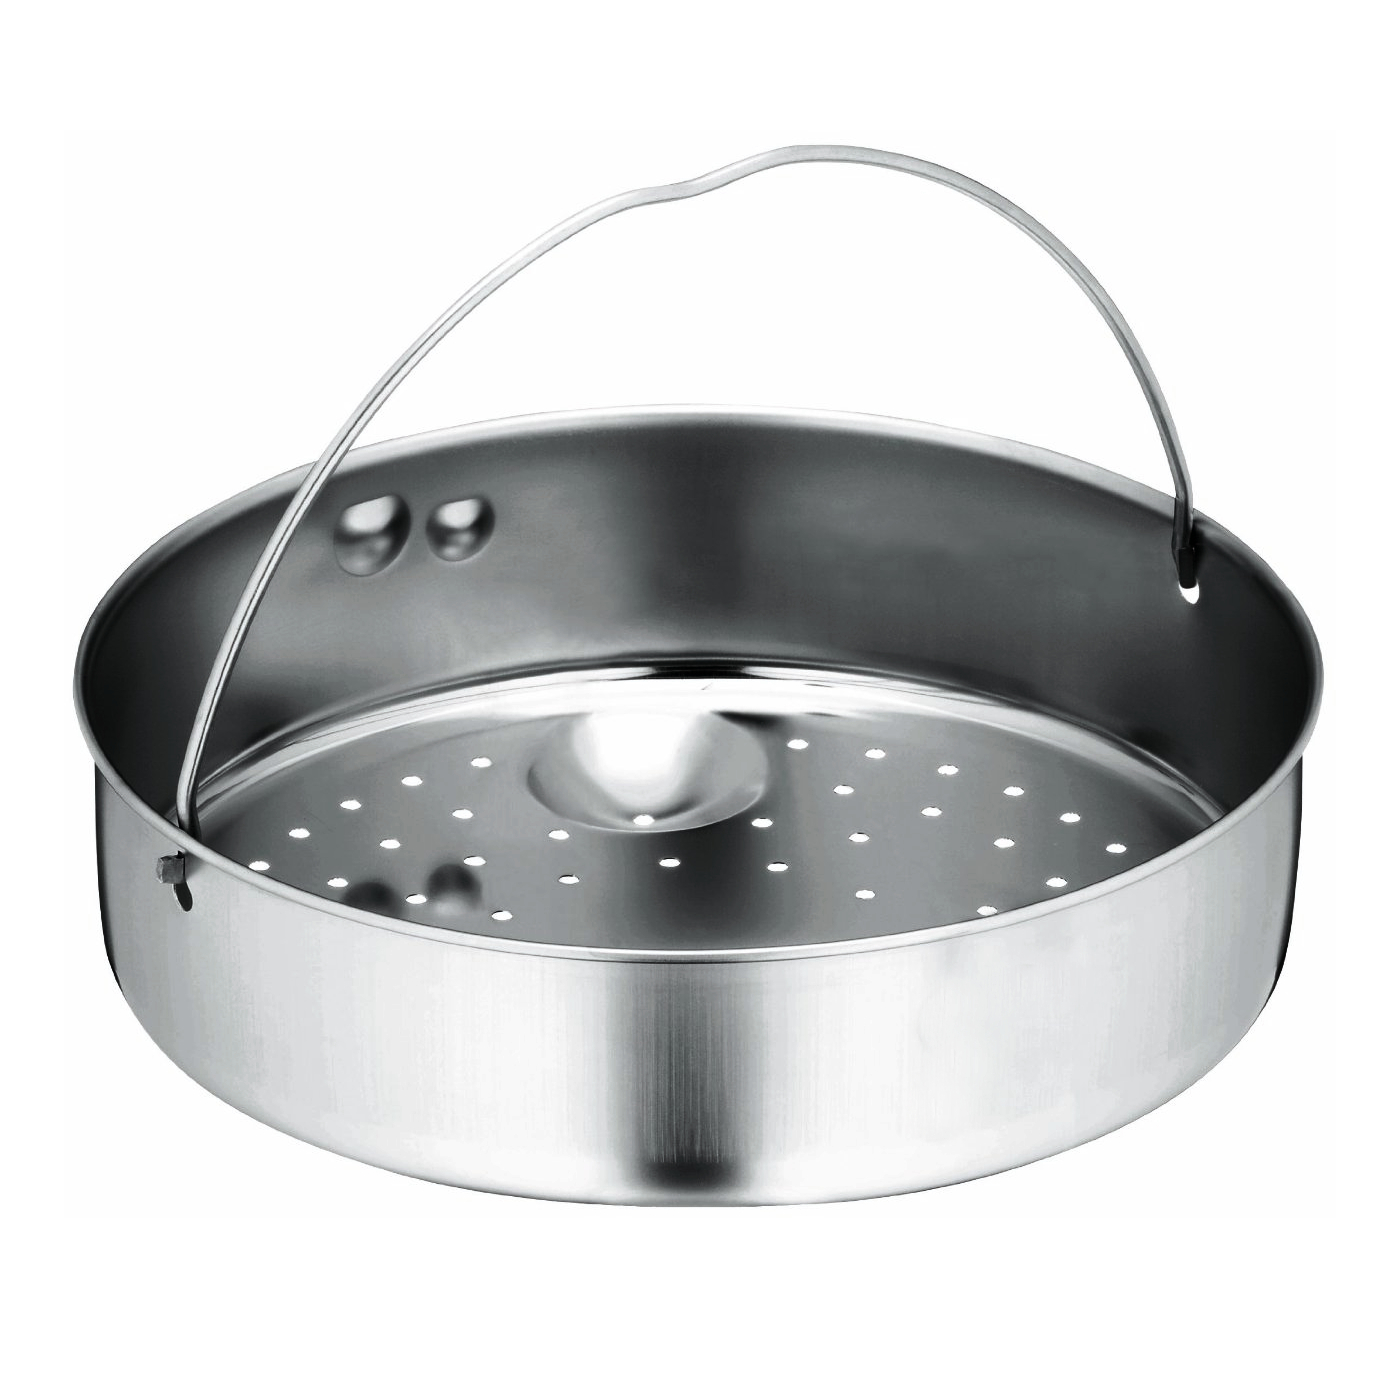 WMF Perfect Plus Stainless Steel Perforated Insert